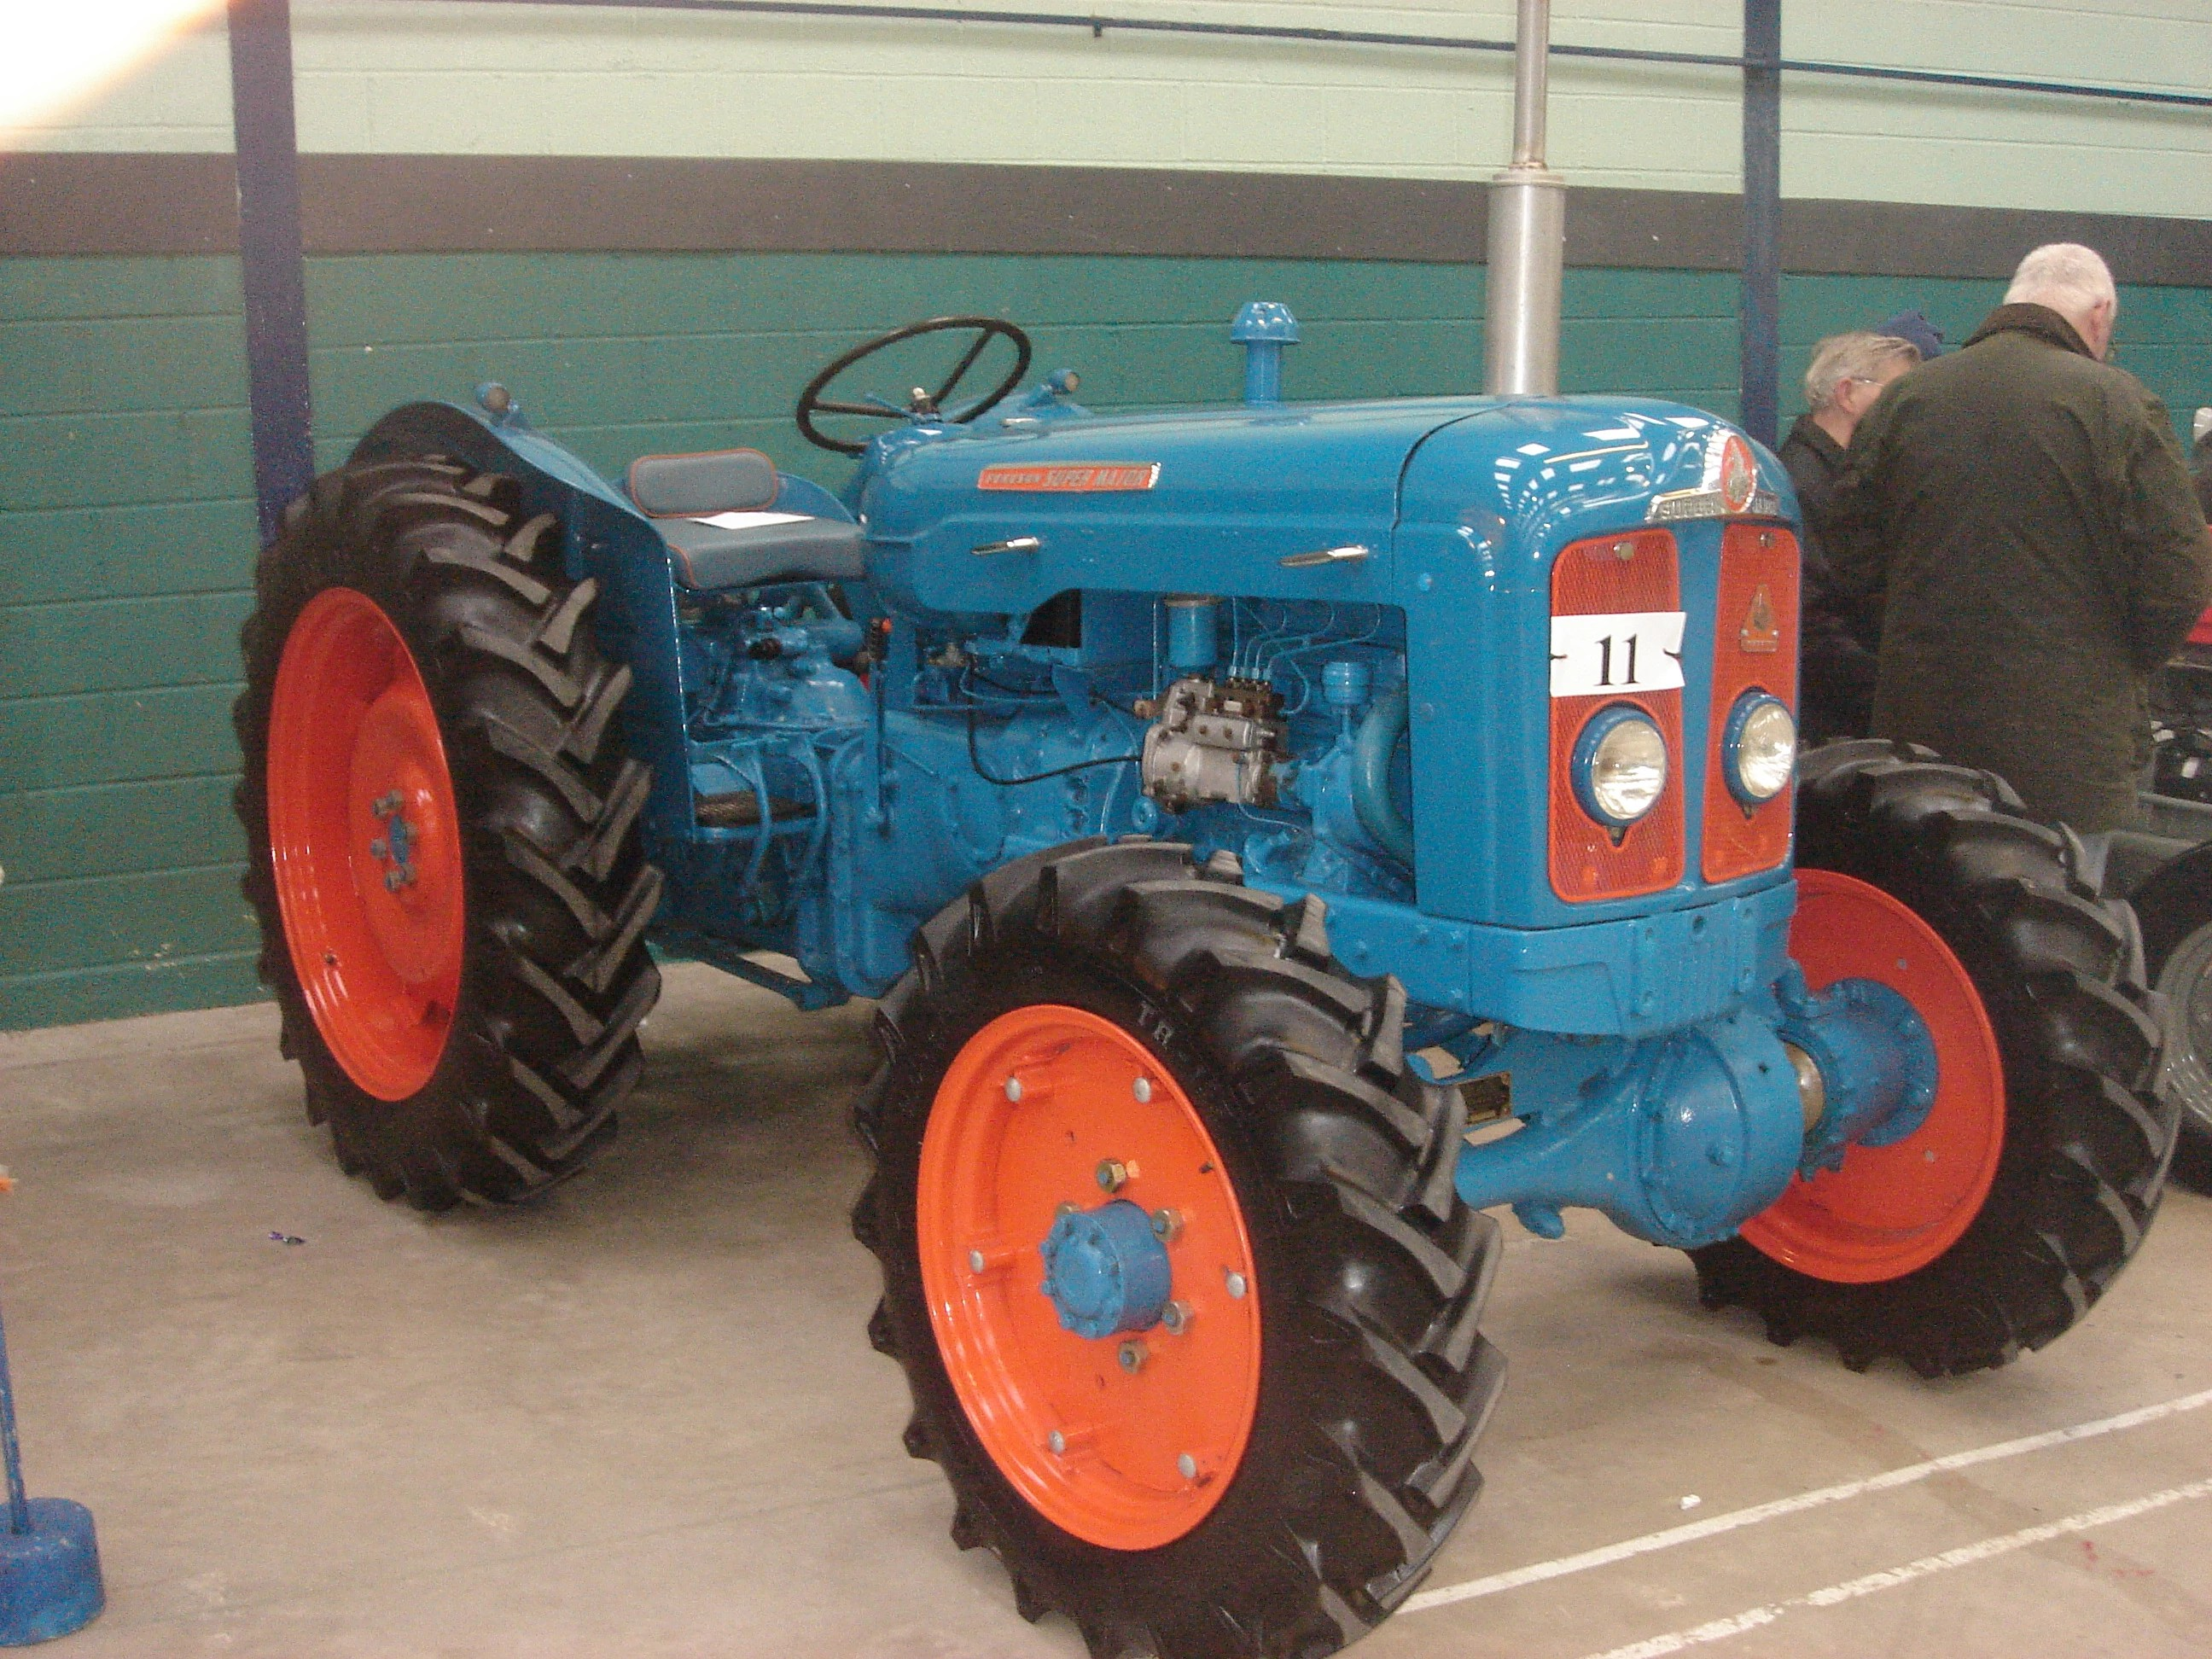 fordson e1a major tractor construction plant wiki fandom powered by wikia [ 2592 x 1944 Pixel ]